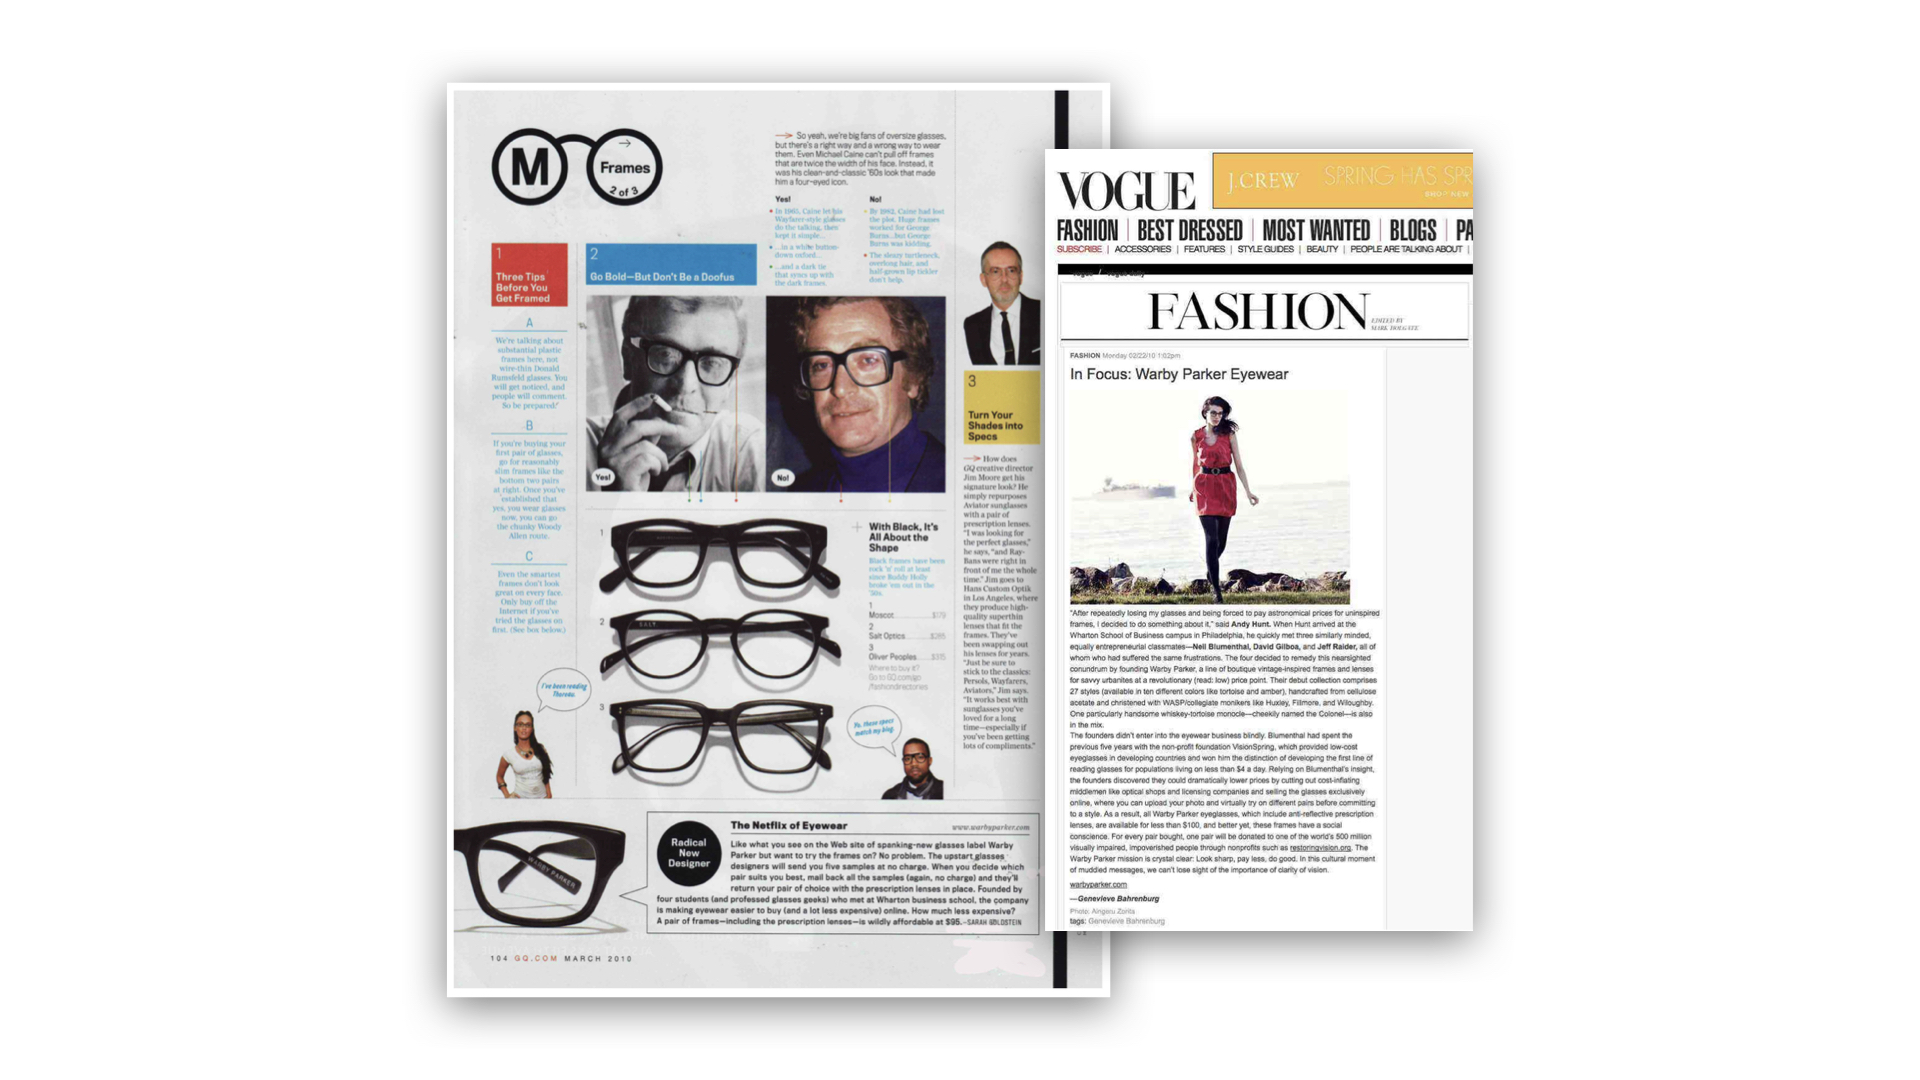 G & Co. is a DTC marketing agency: Warby Parker's GQ and Vogue features catapulted the eyewear brand into popularity